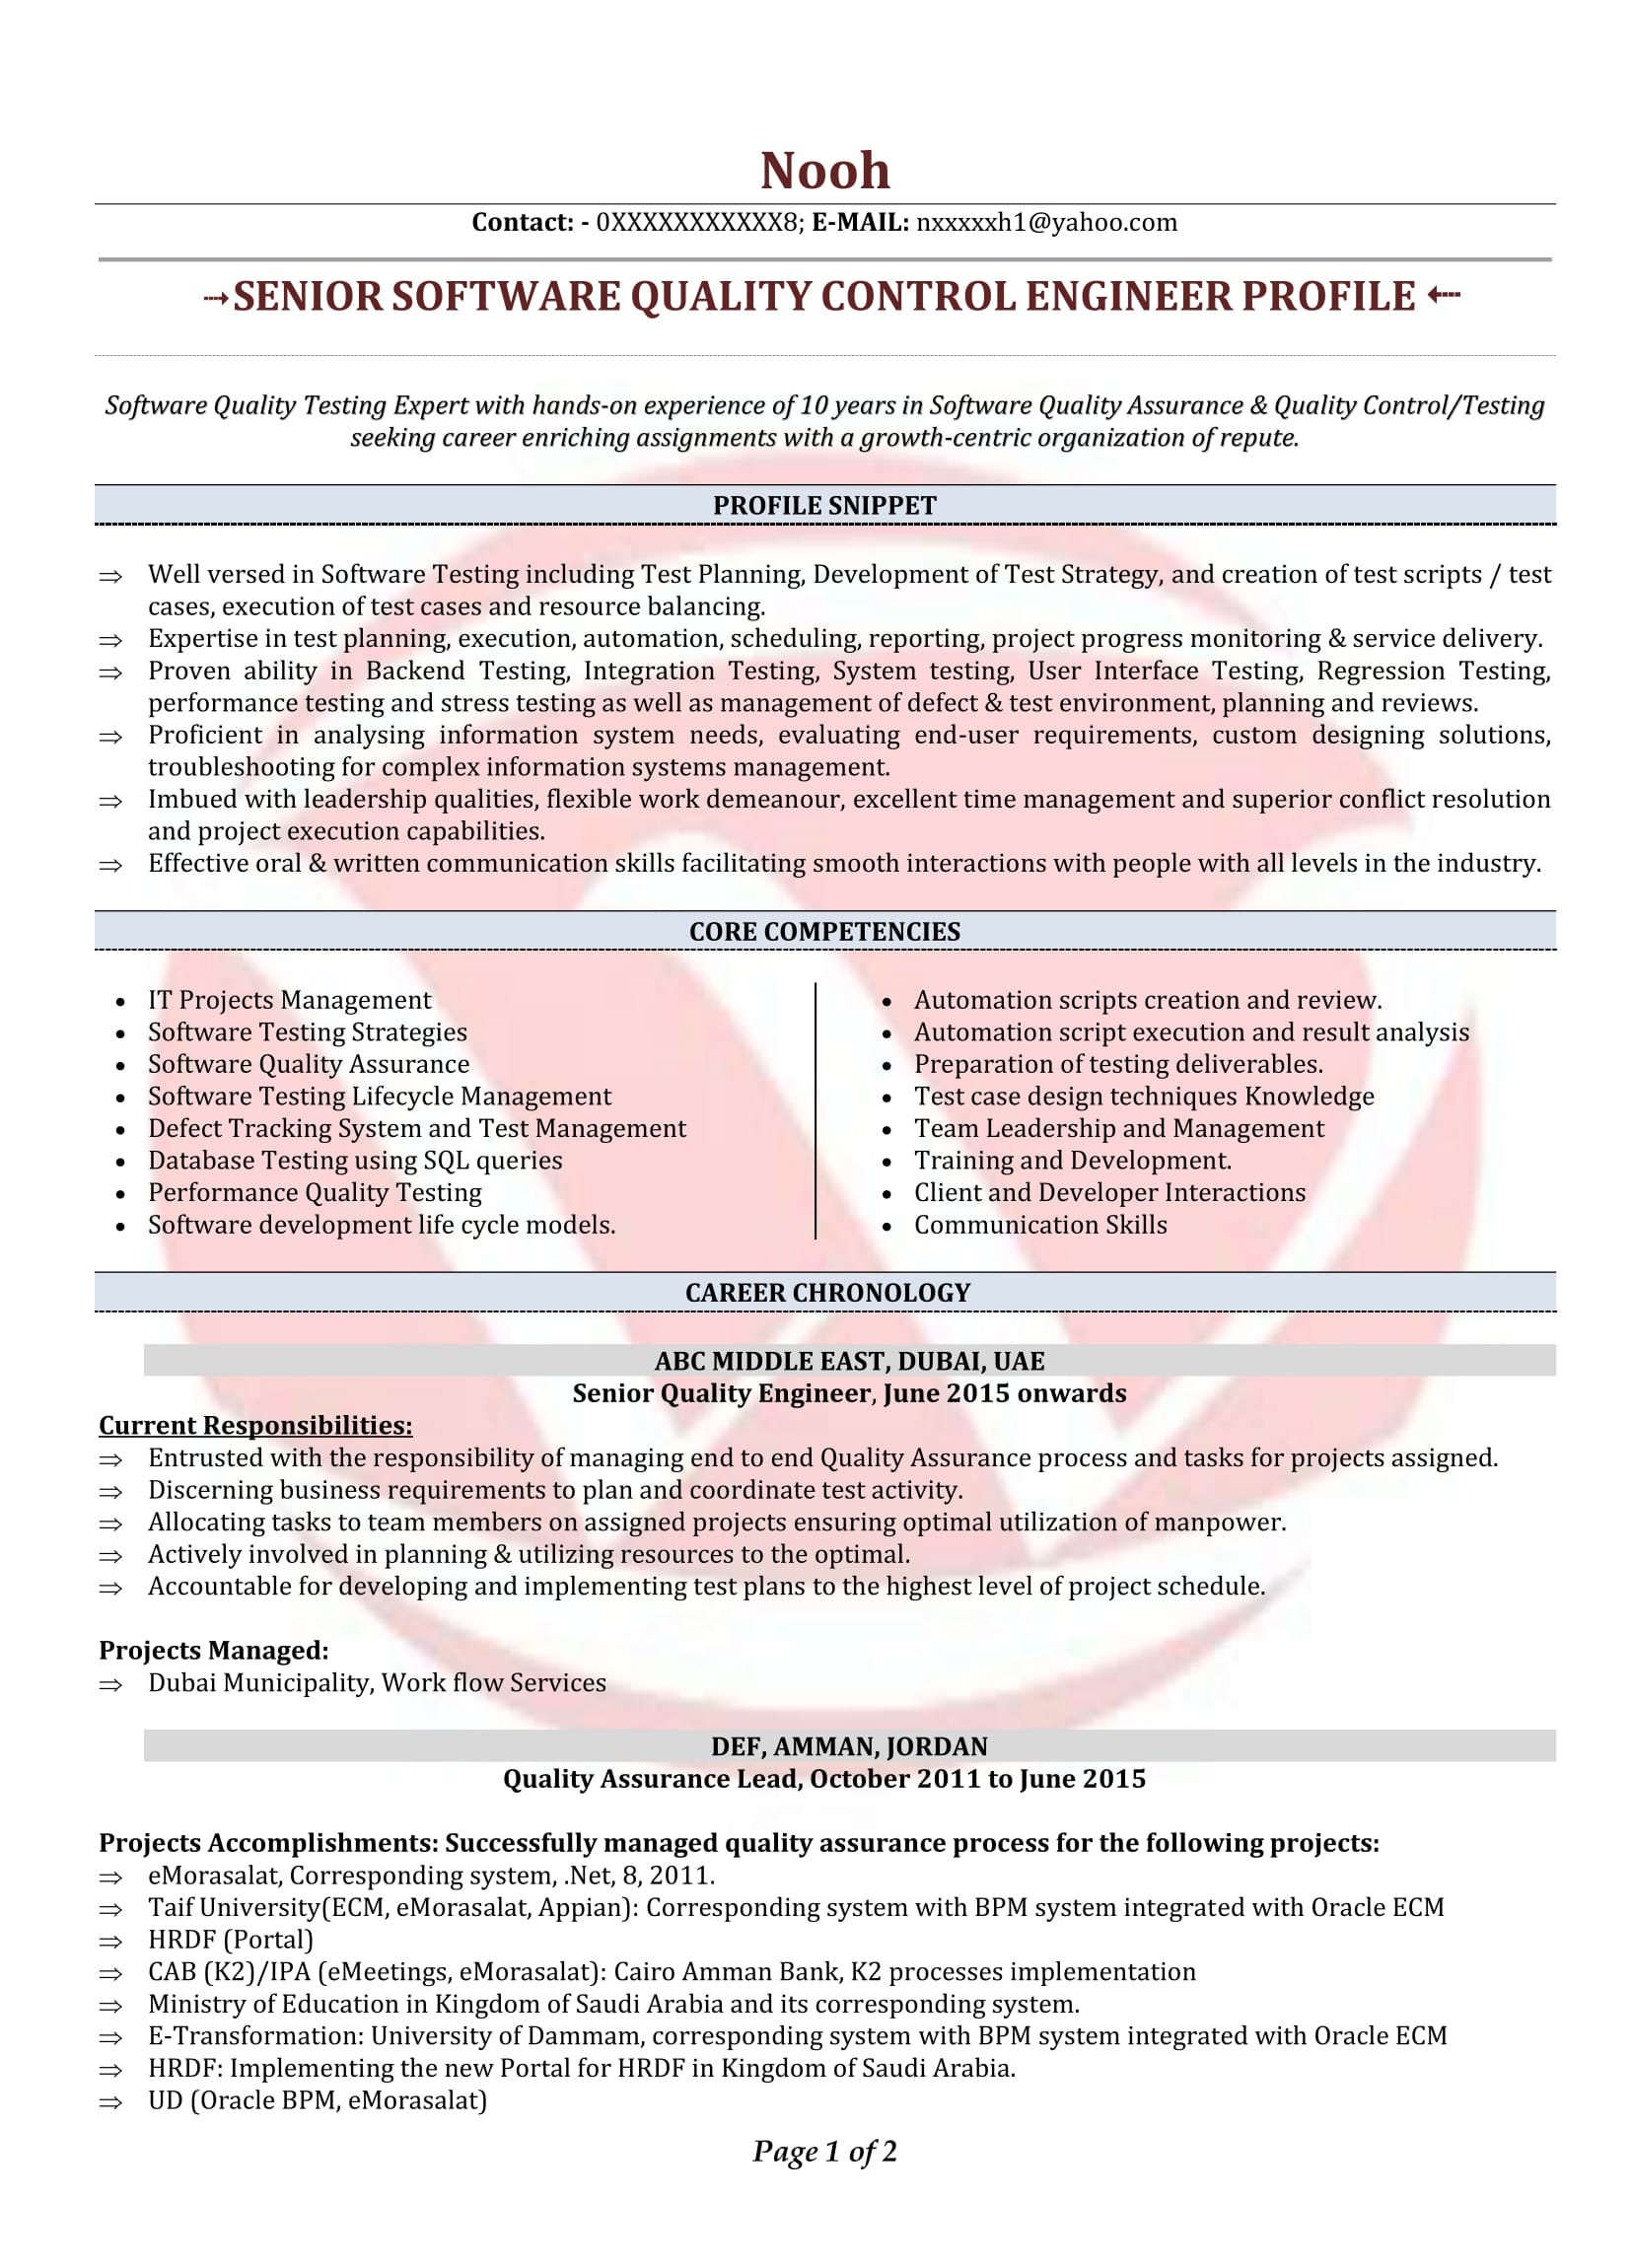 Quality Engineer Sample Resumes, Download Resume Format Templates!